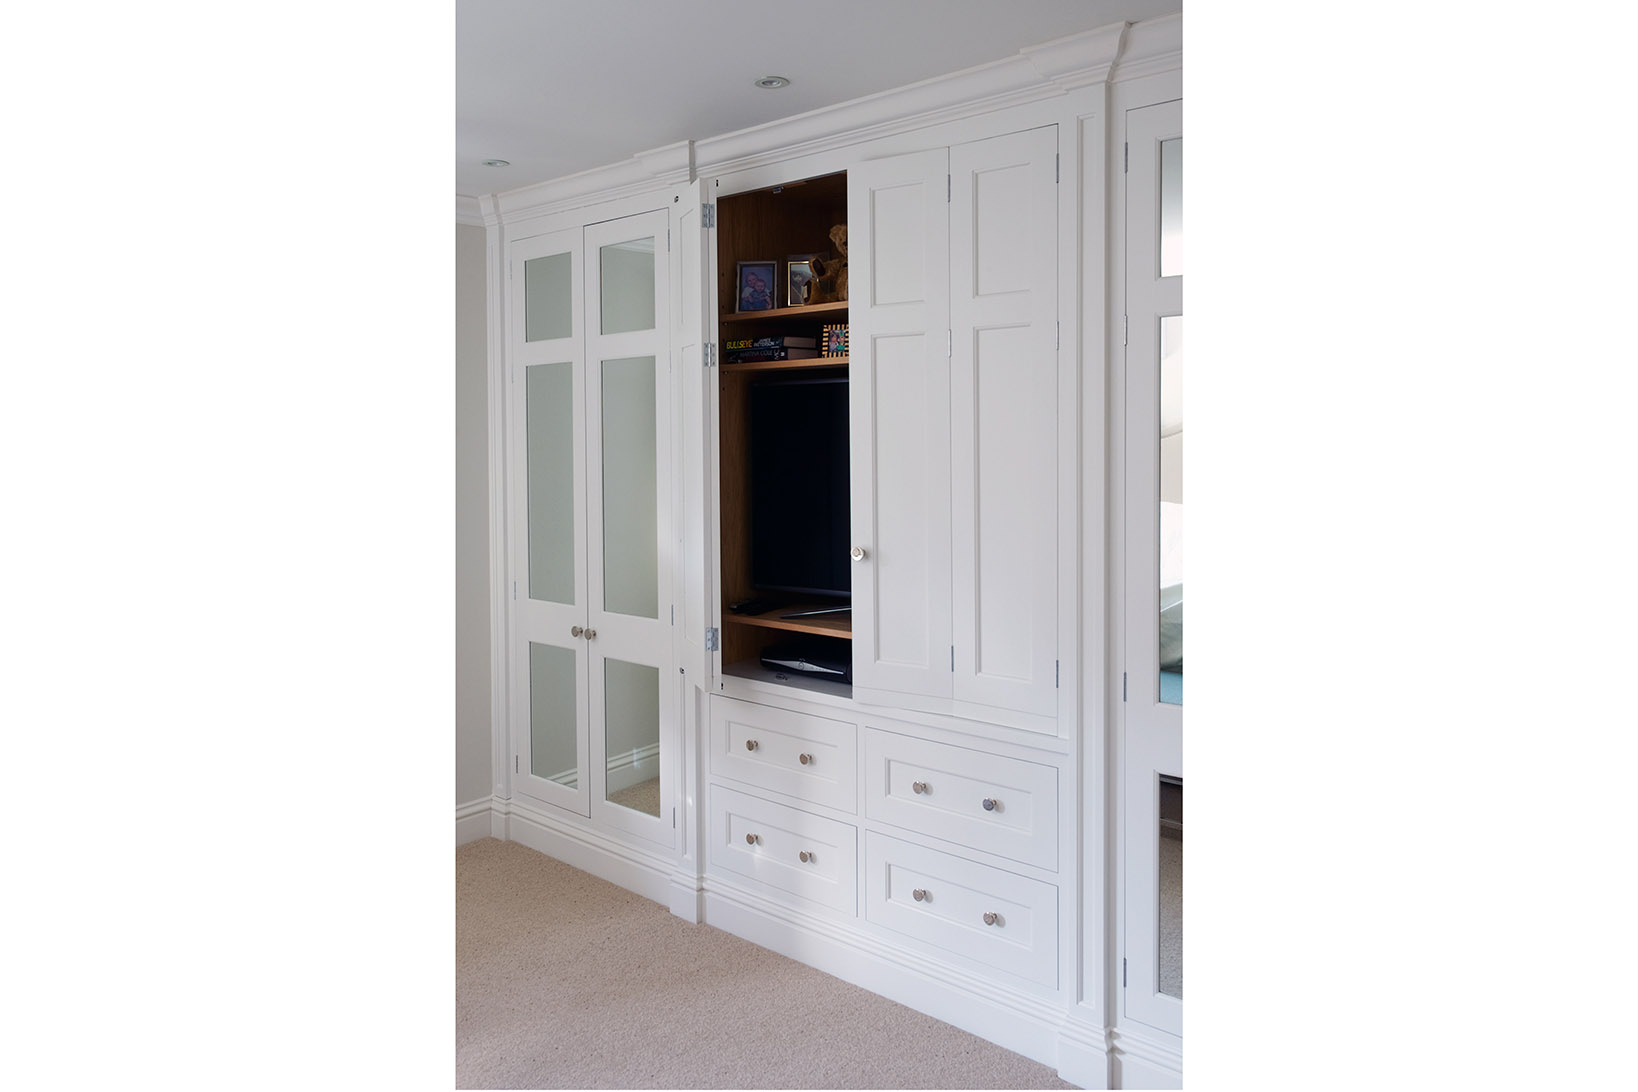 Bespoke shaker built in wardrobes painted in Zoffany Quarter Paris Grey with polished chrome handles and mirrored panels.